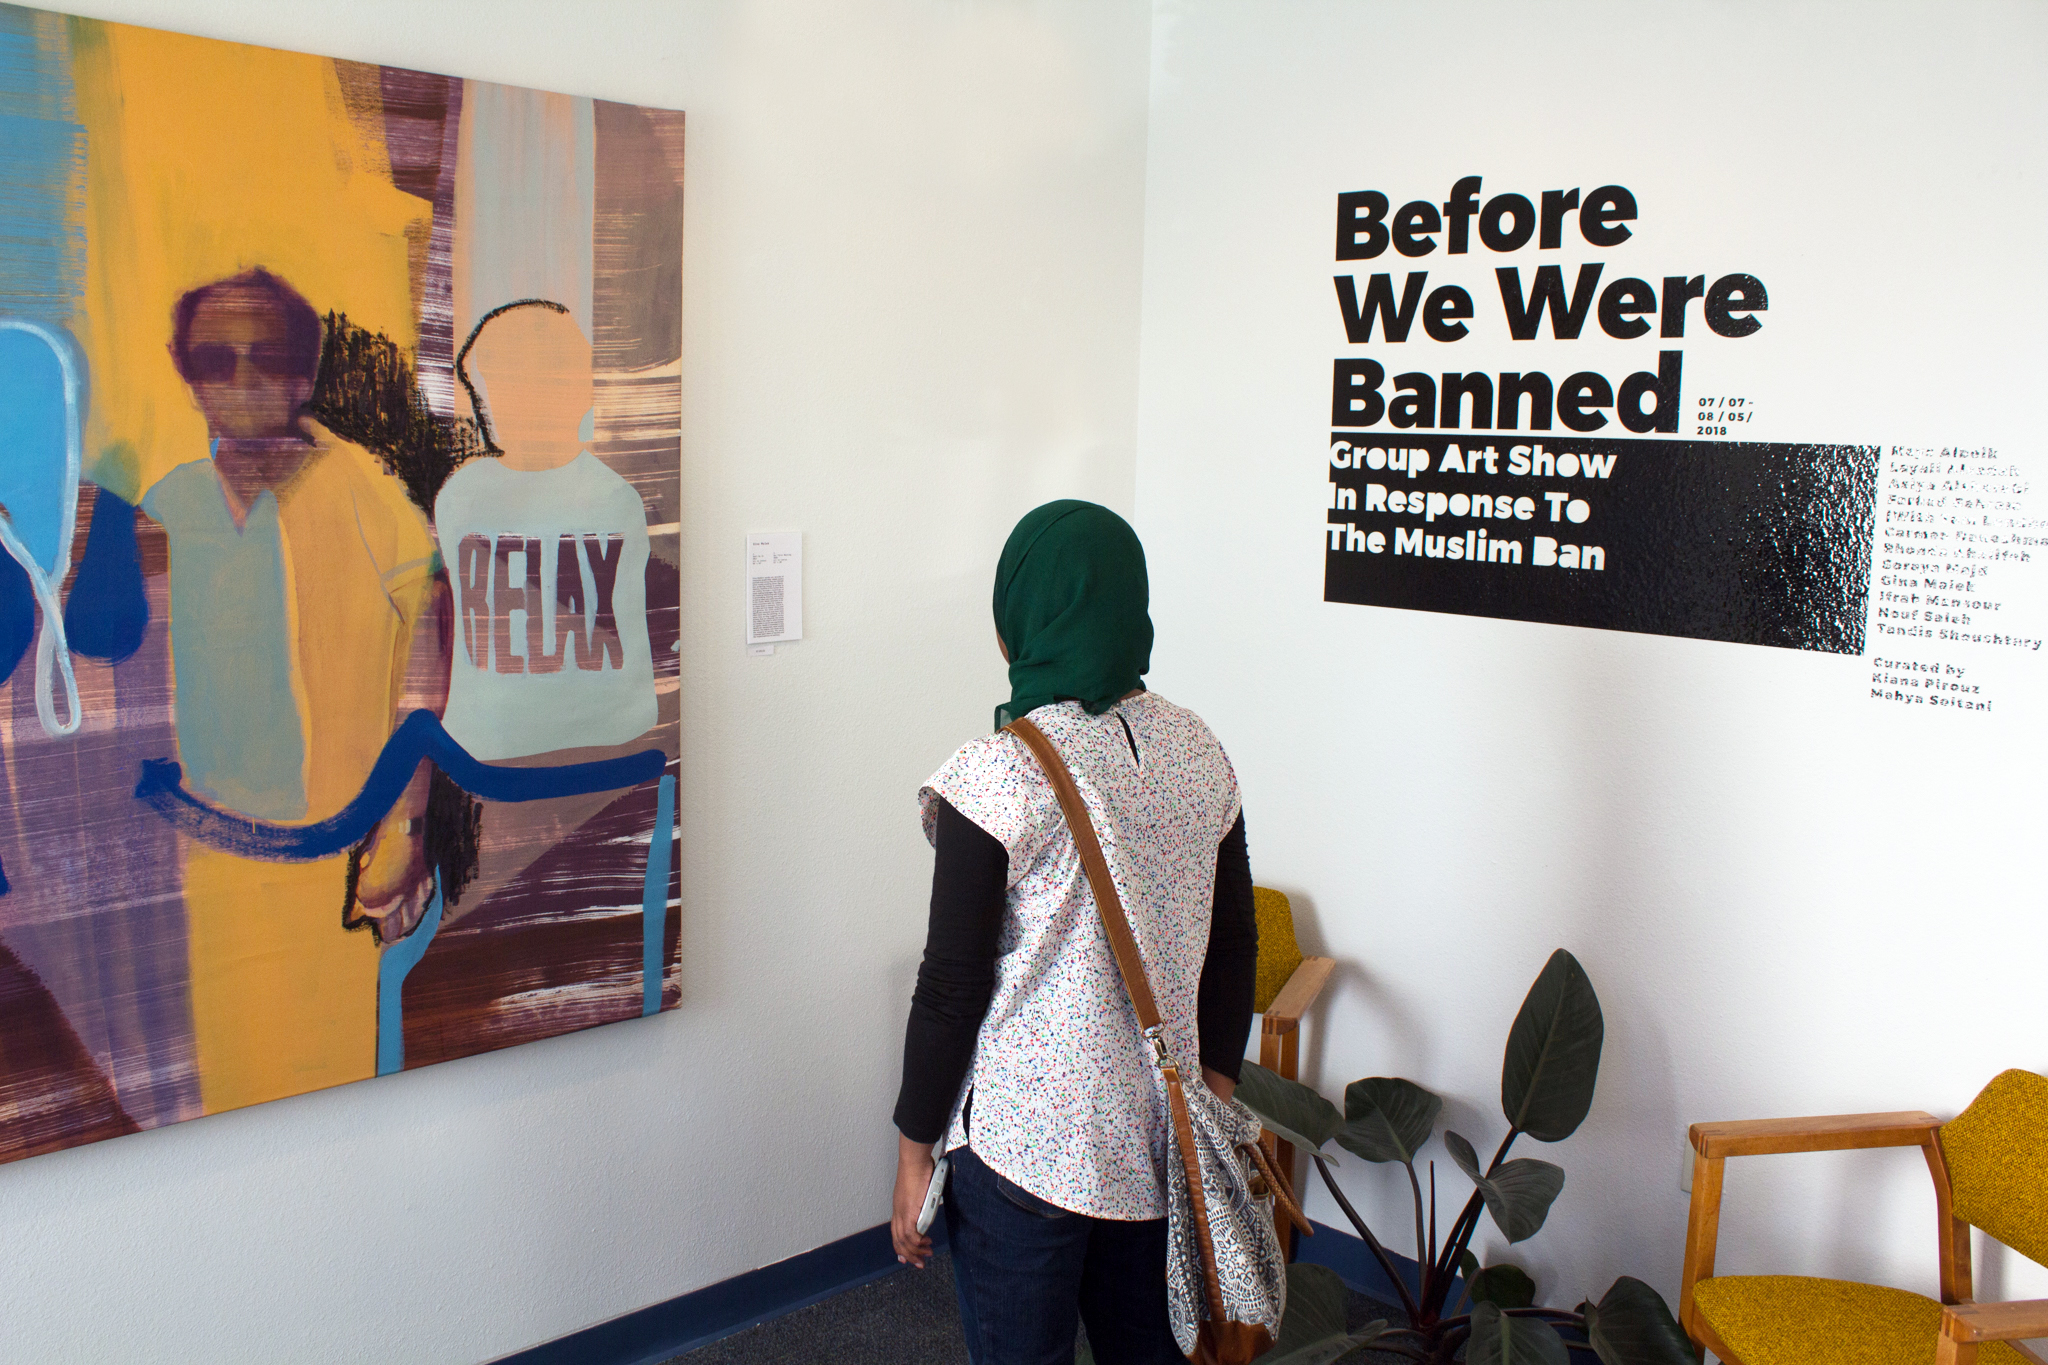 Before We Were Banned, SF opening-54.jpg